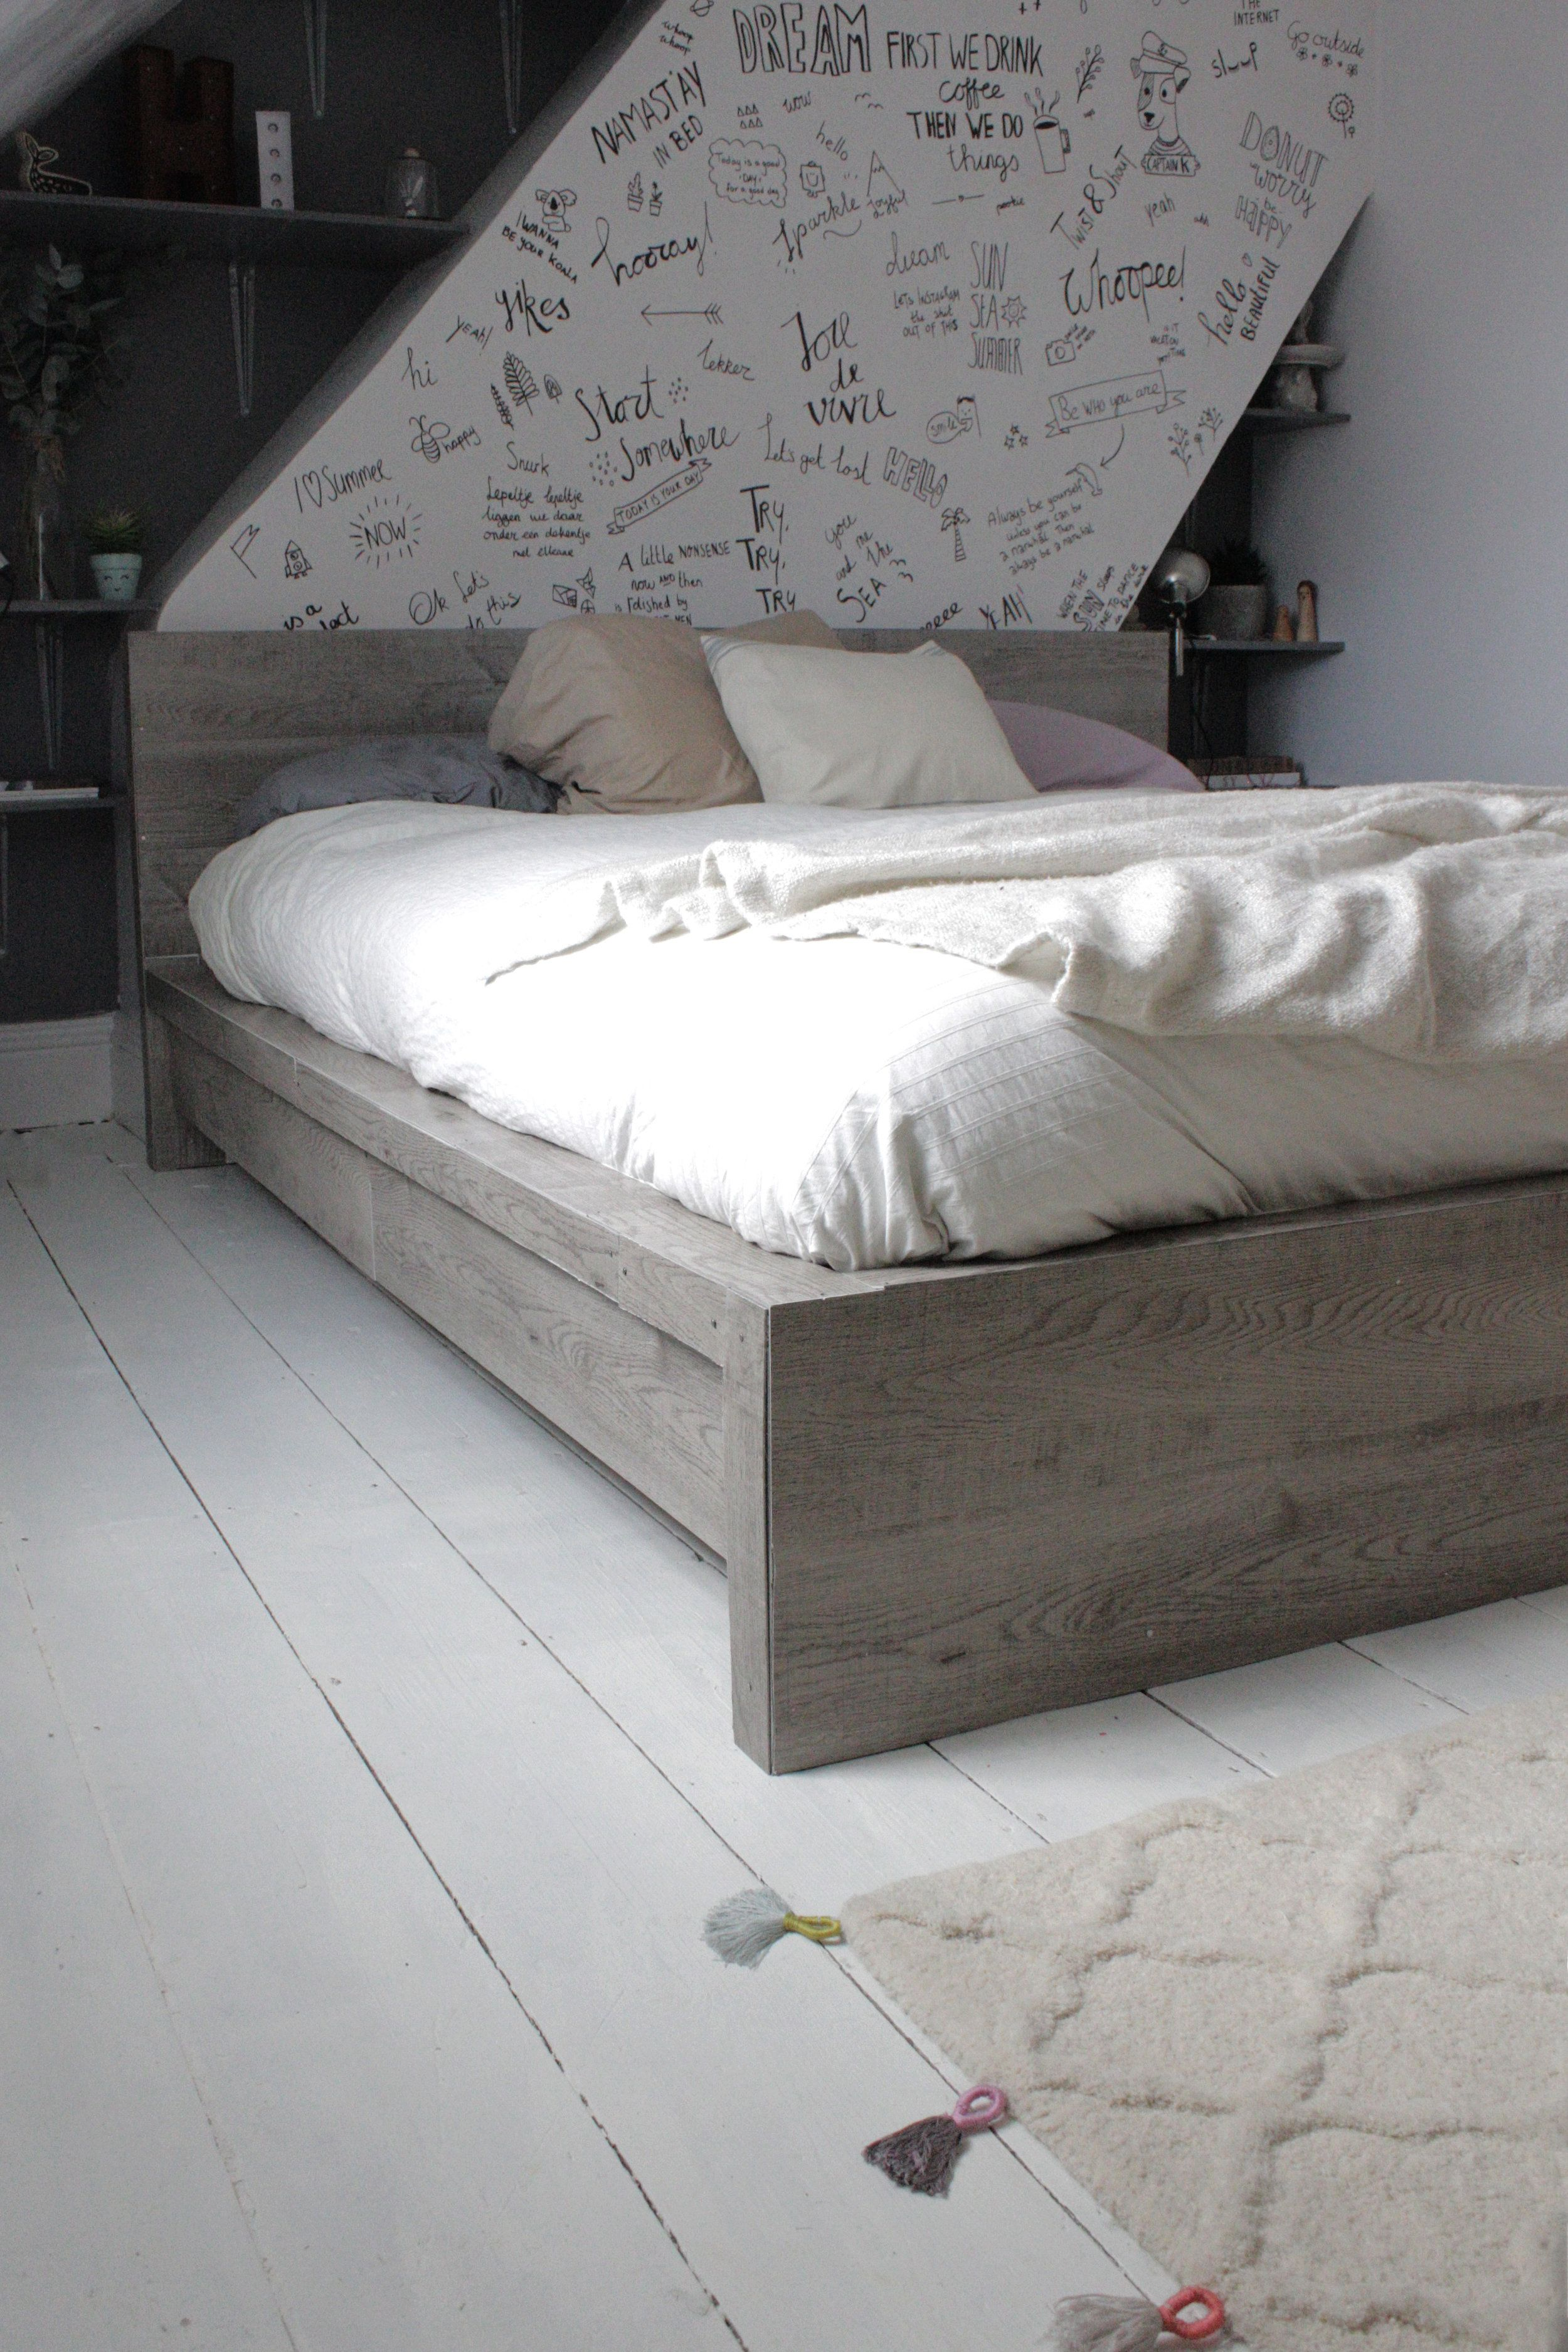 Ikea hack, Rustic look for a Malm bedframe Ikea bed